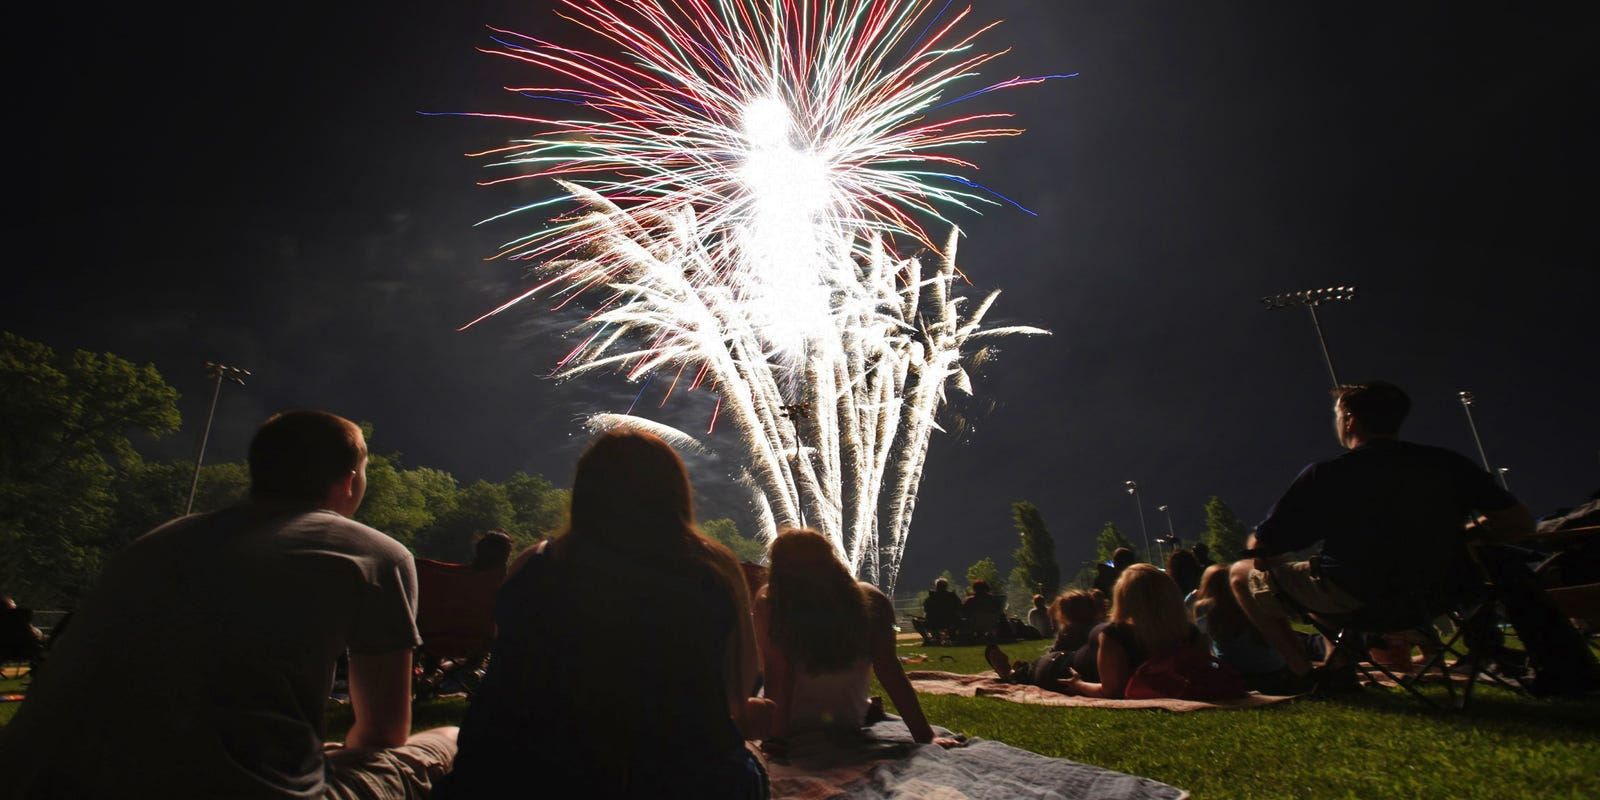 Fireworks: Where to watch in Bergen County